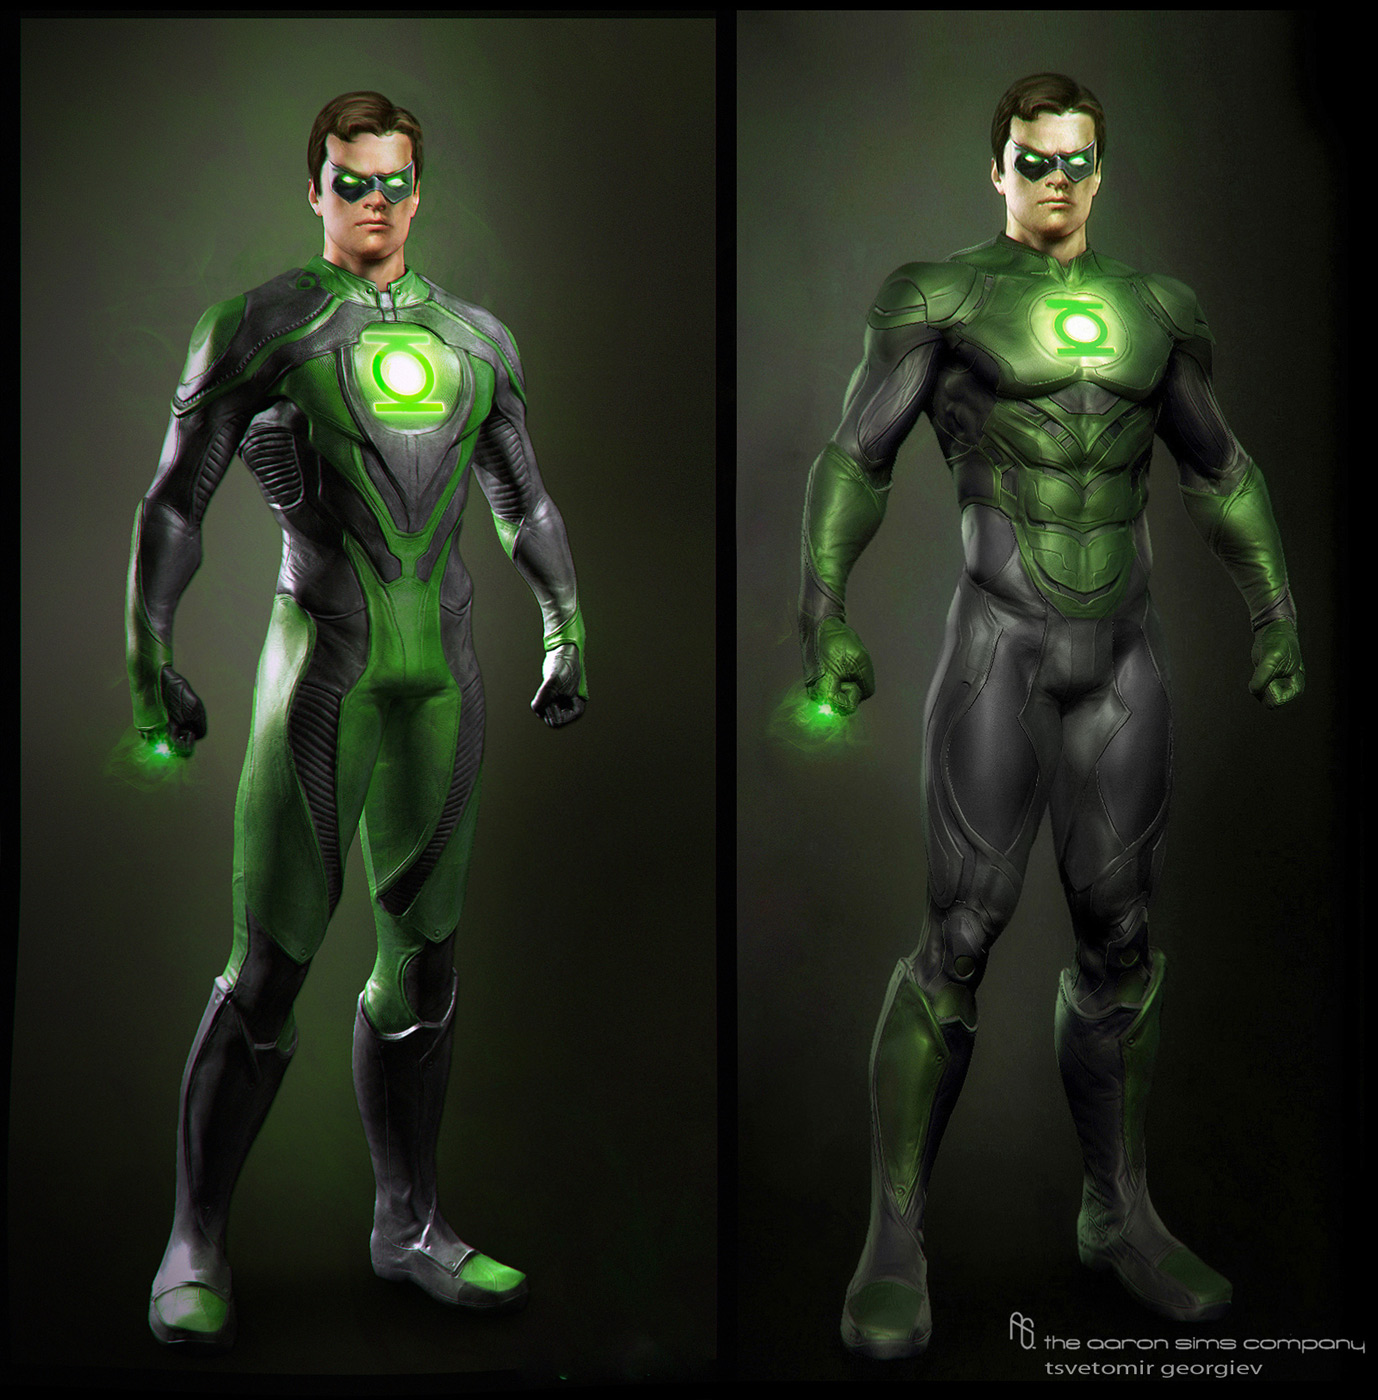 Cmivfx Zbrush Character Concept Design : Green lantern